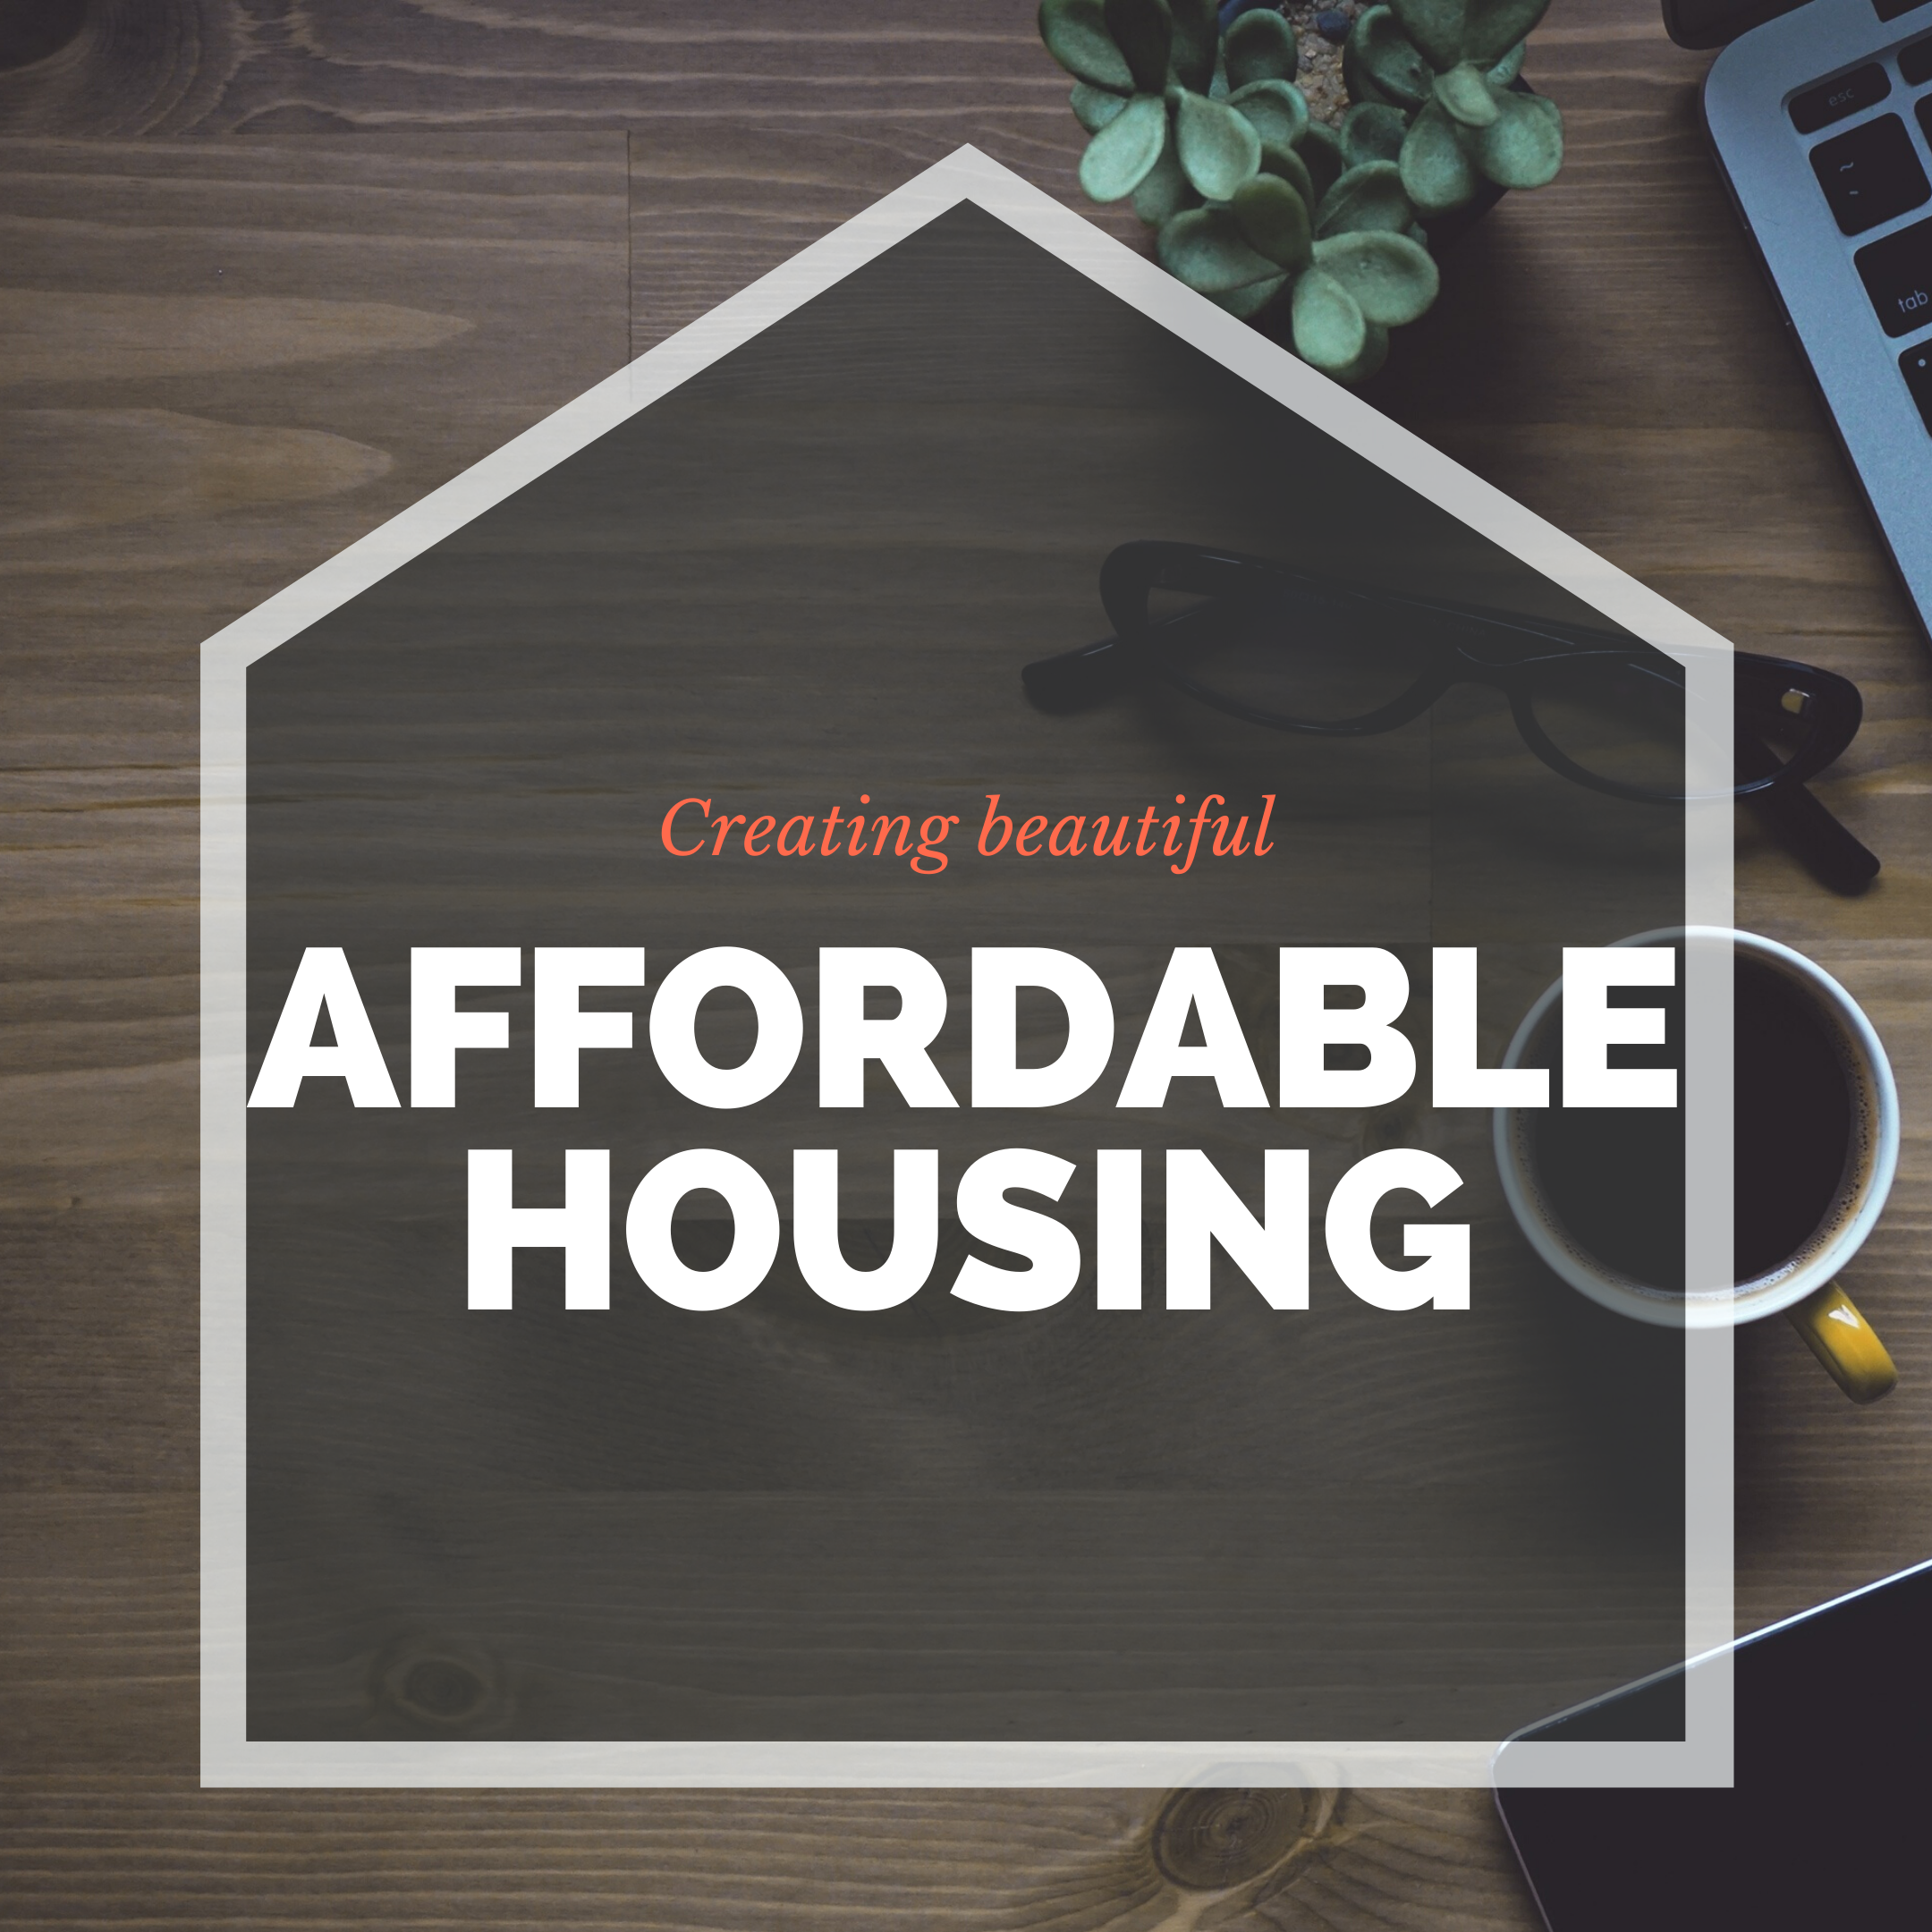 Affordable Housing: The APOGEE Way